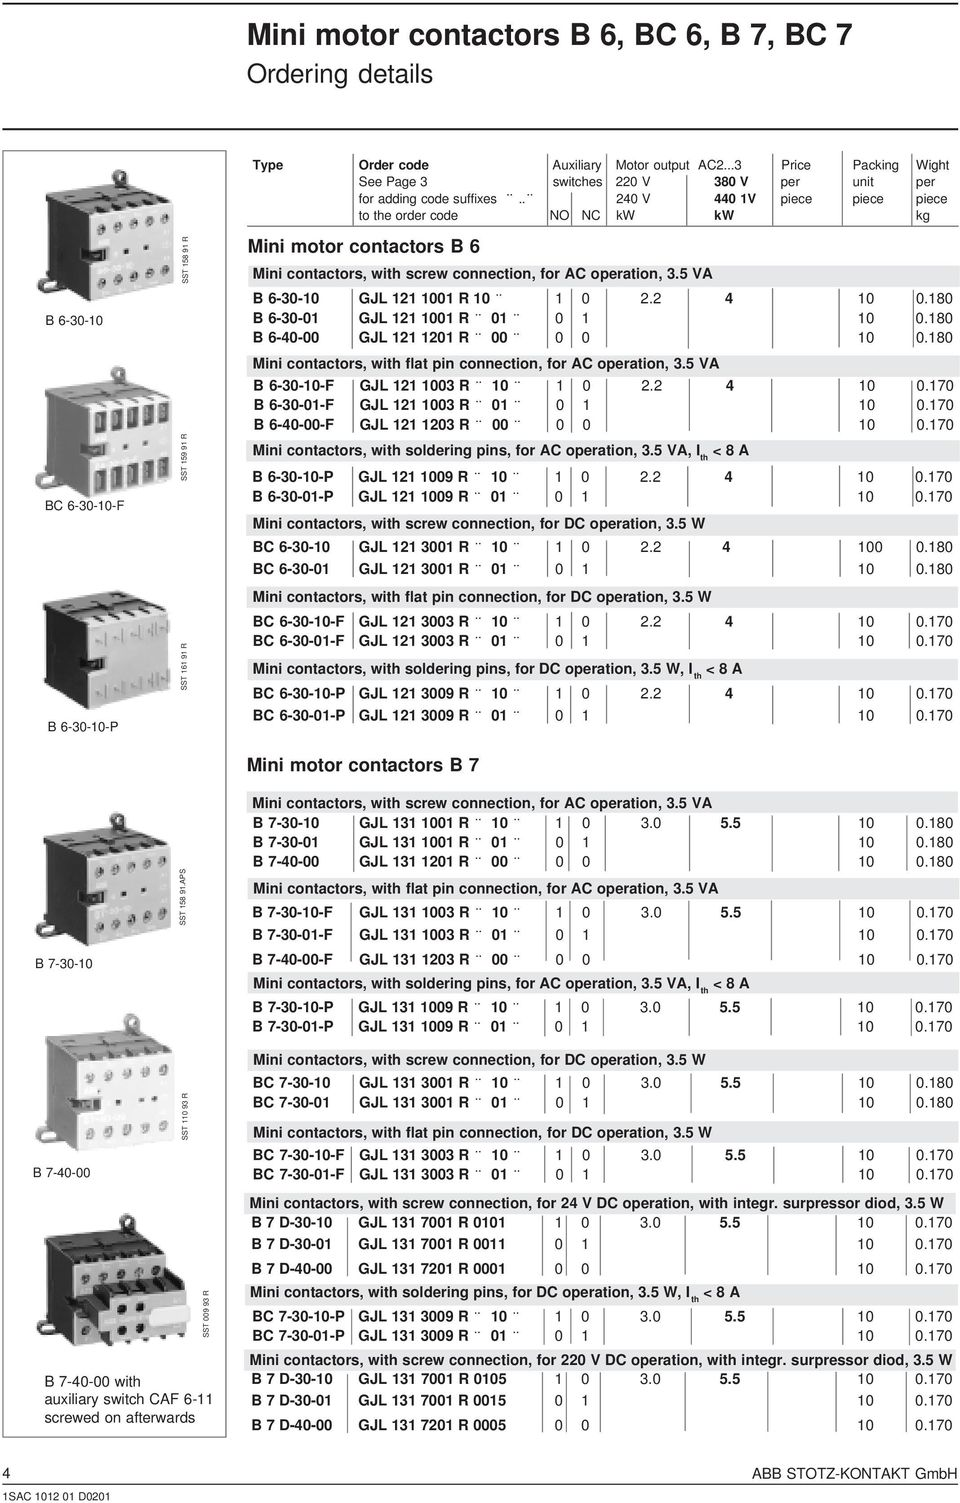 Technical Catalogue Mini Contactors Type B 6 7 Pdf Controlling Astardelta Motor 240 V 440 1v Piece To The Order Code No Nc Kw